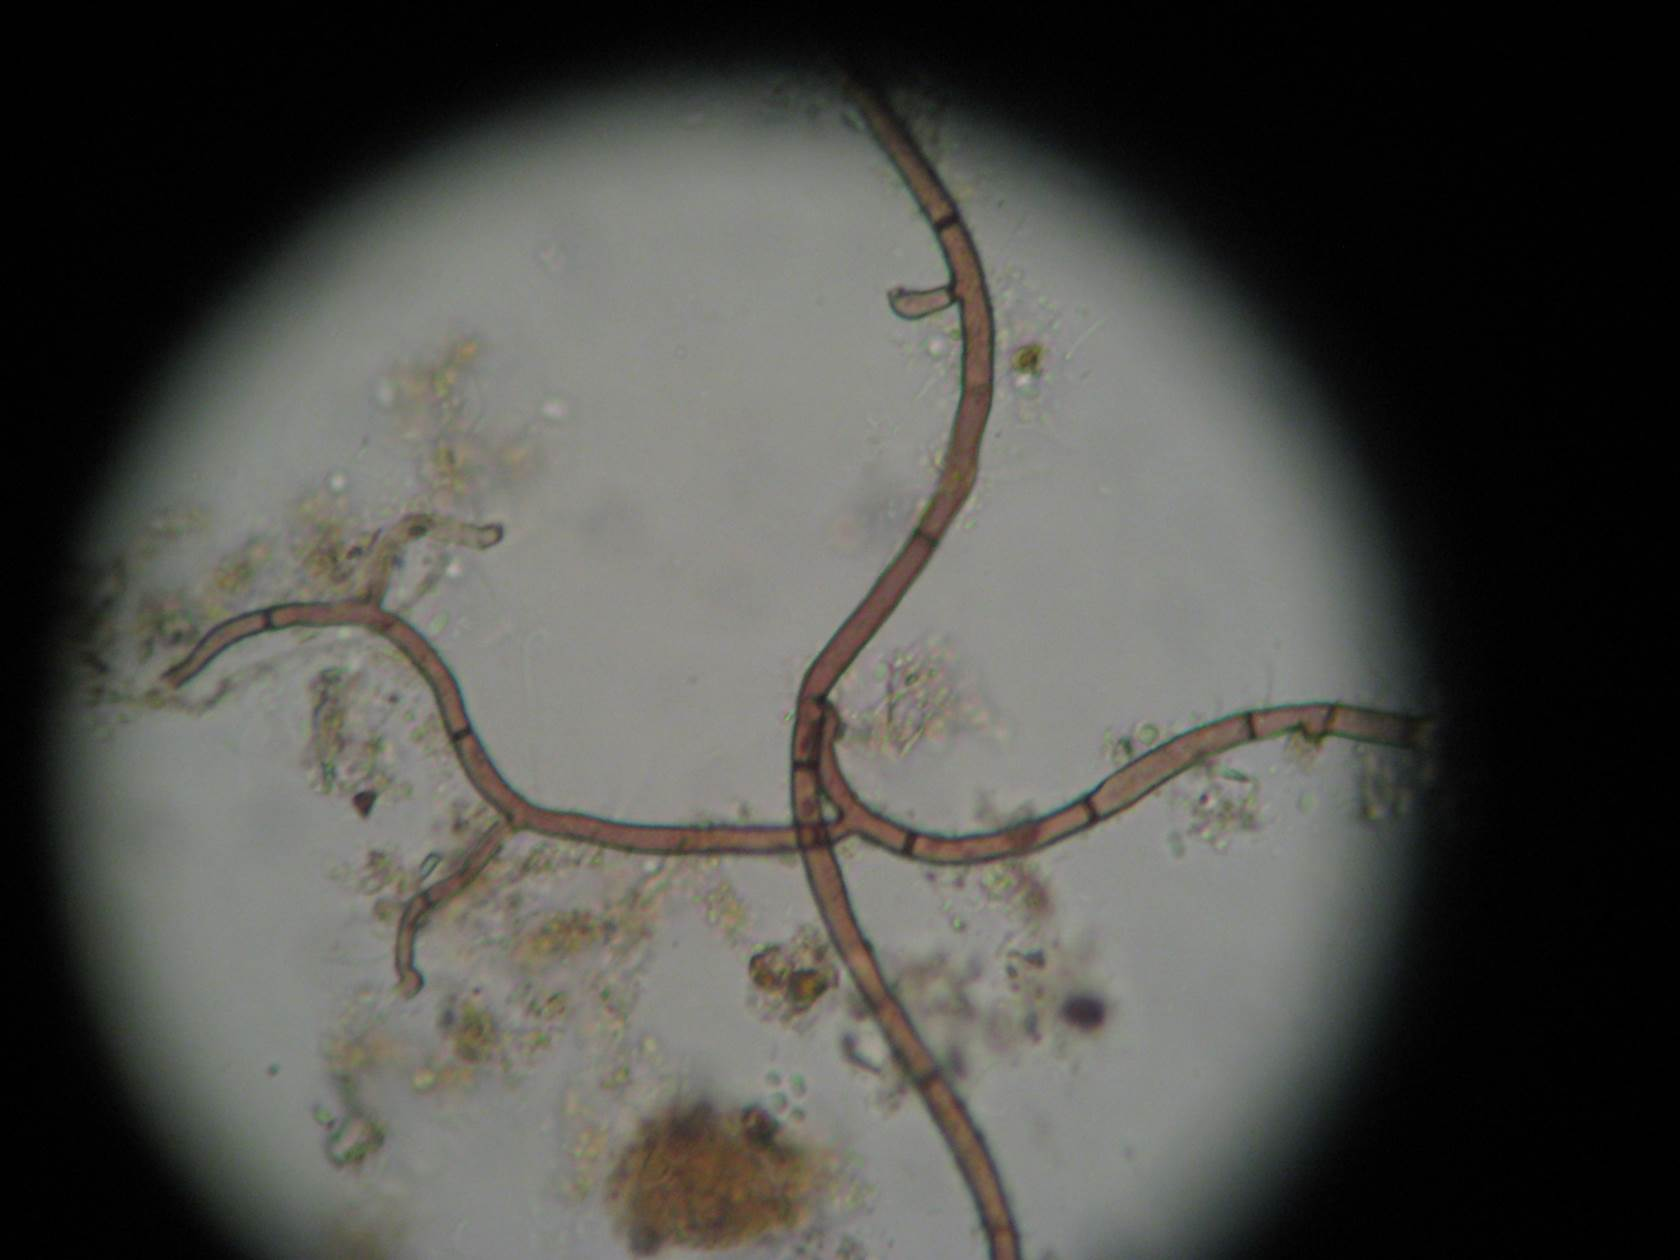 Beneficial Fungi Magnified 400X